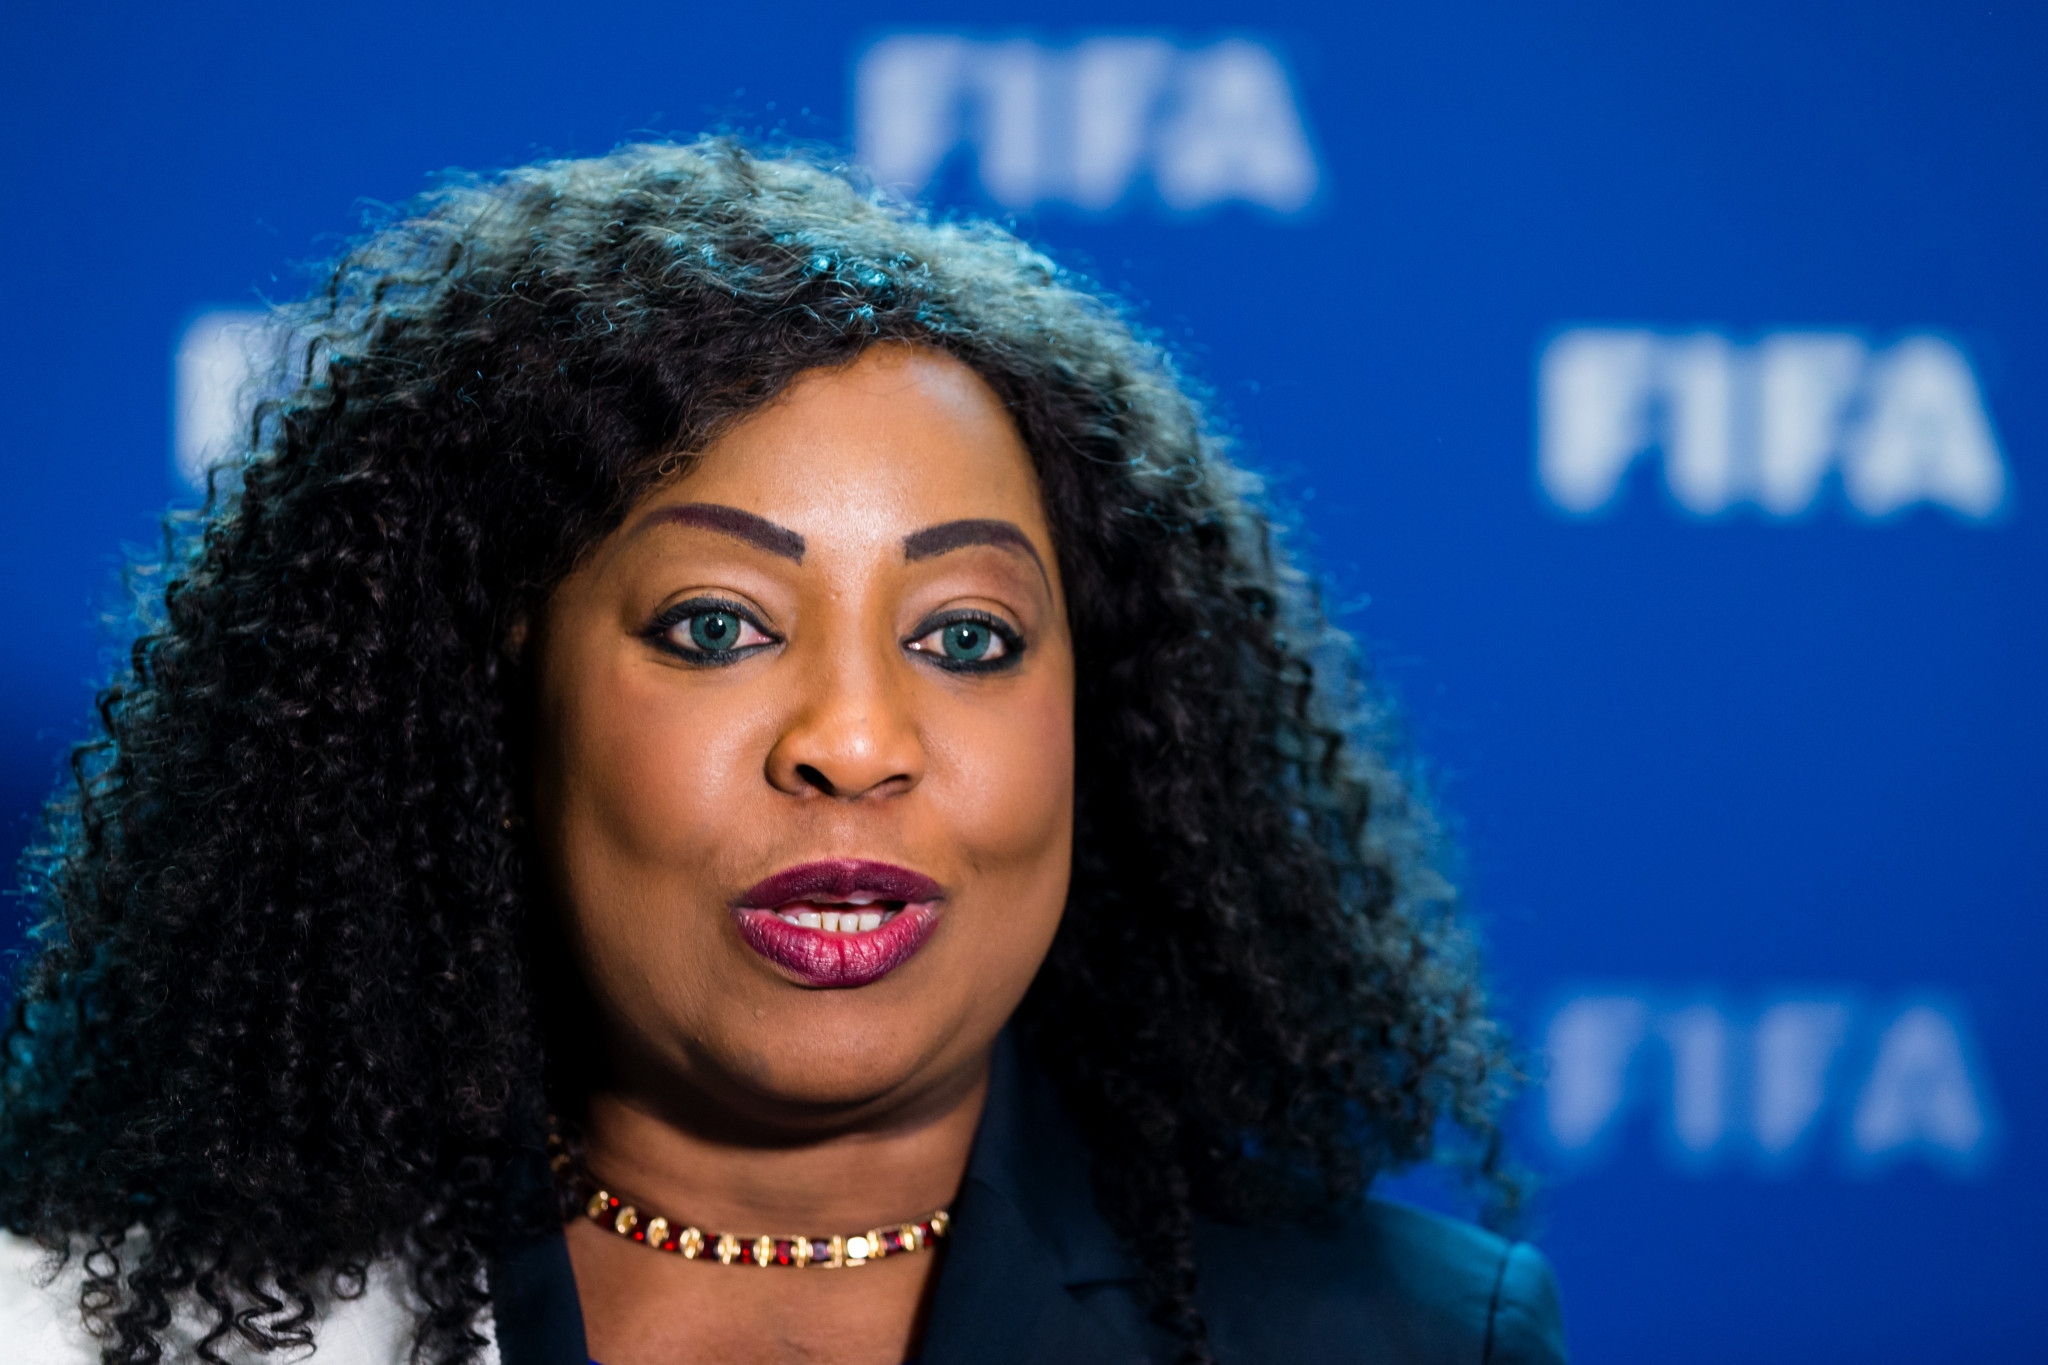 FIFA secretary general Fatma Samoura revealed in a letter that delegates attending this year's Congress in Moscow would not receive their $250 daily allowance in cash ©Getty Images